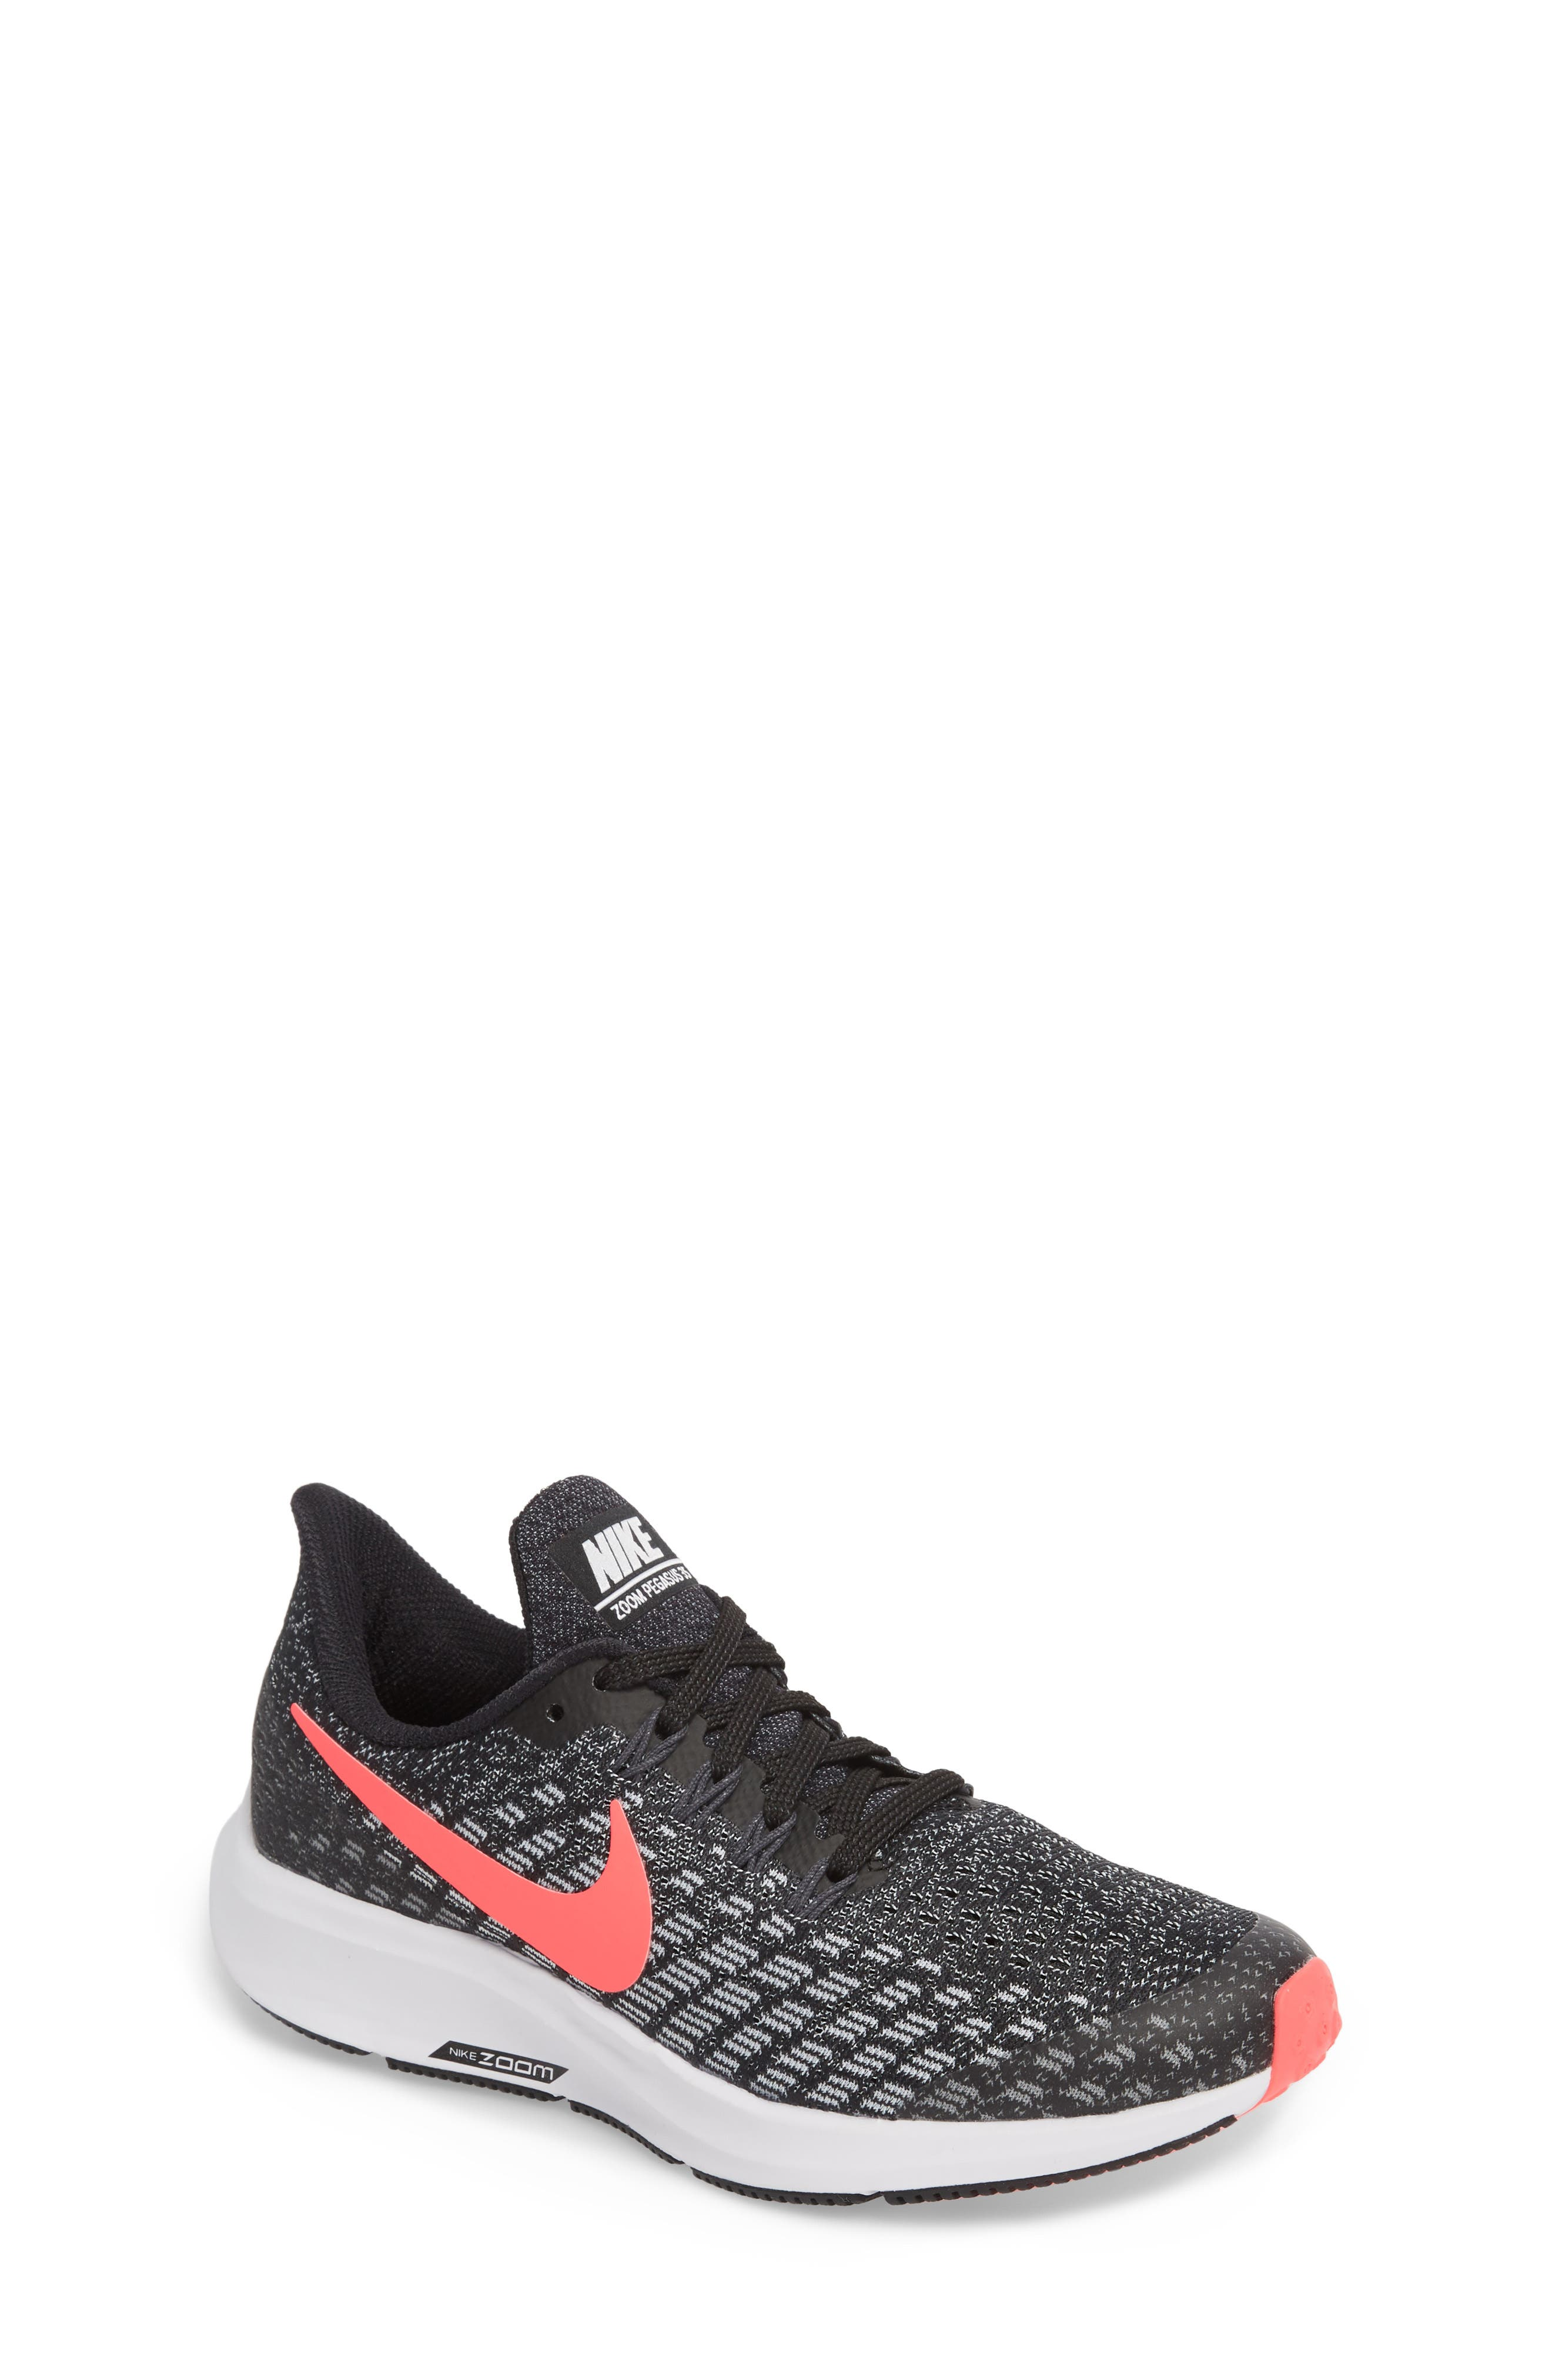 Air Zoom Pegasus 35 Sneaker,                         Main,                         color, RACER PINK/ WHITE/ ANTHRACITE